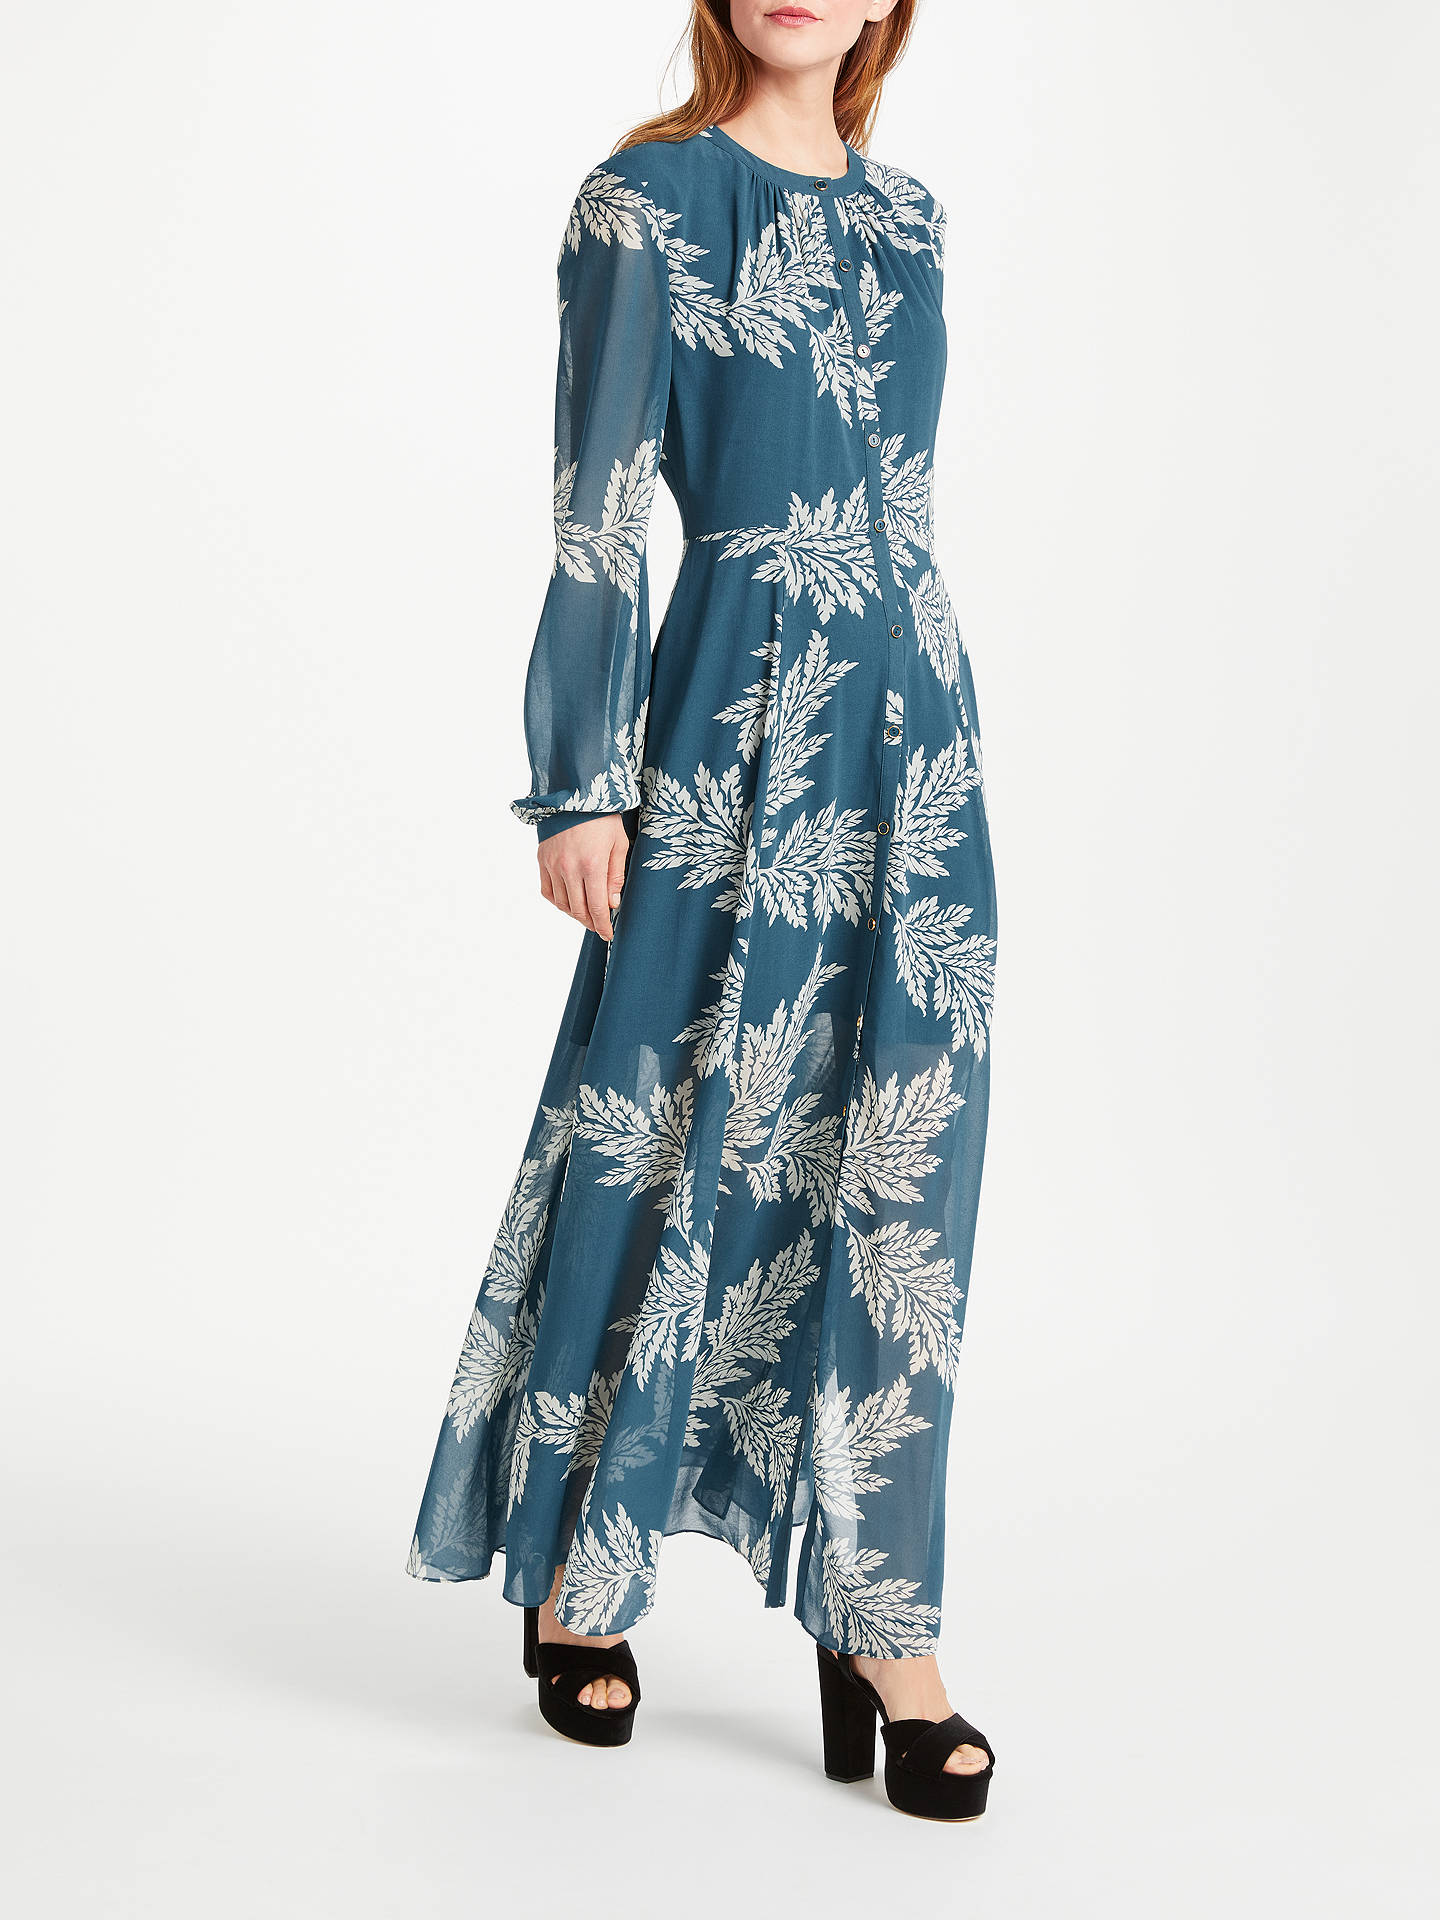 BuySomerset by Alice Temperley Palm Print Maxi Dress 5bf7af057